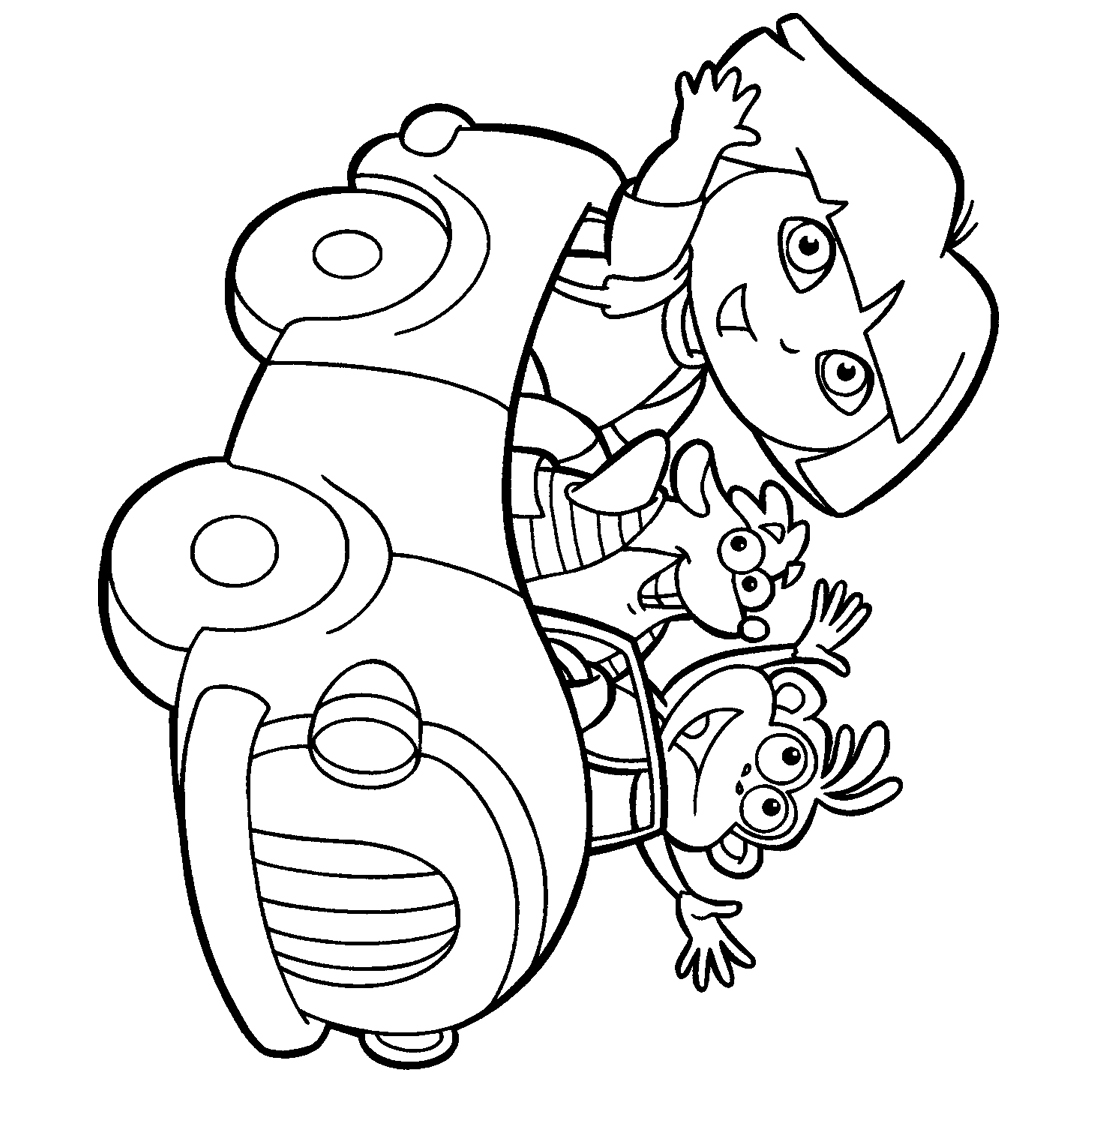 Printable coloring pages for kids | Coloring Pages For Kids | coloring pages for toddlers